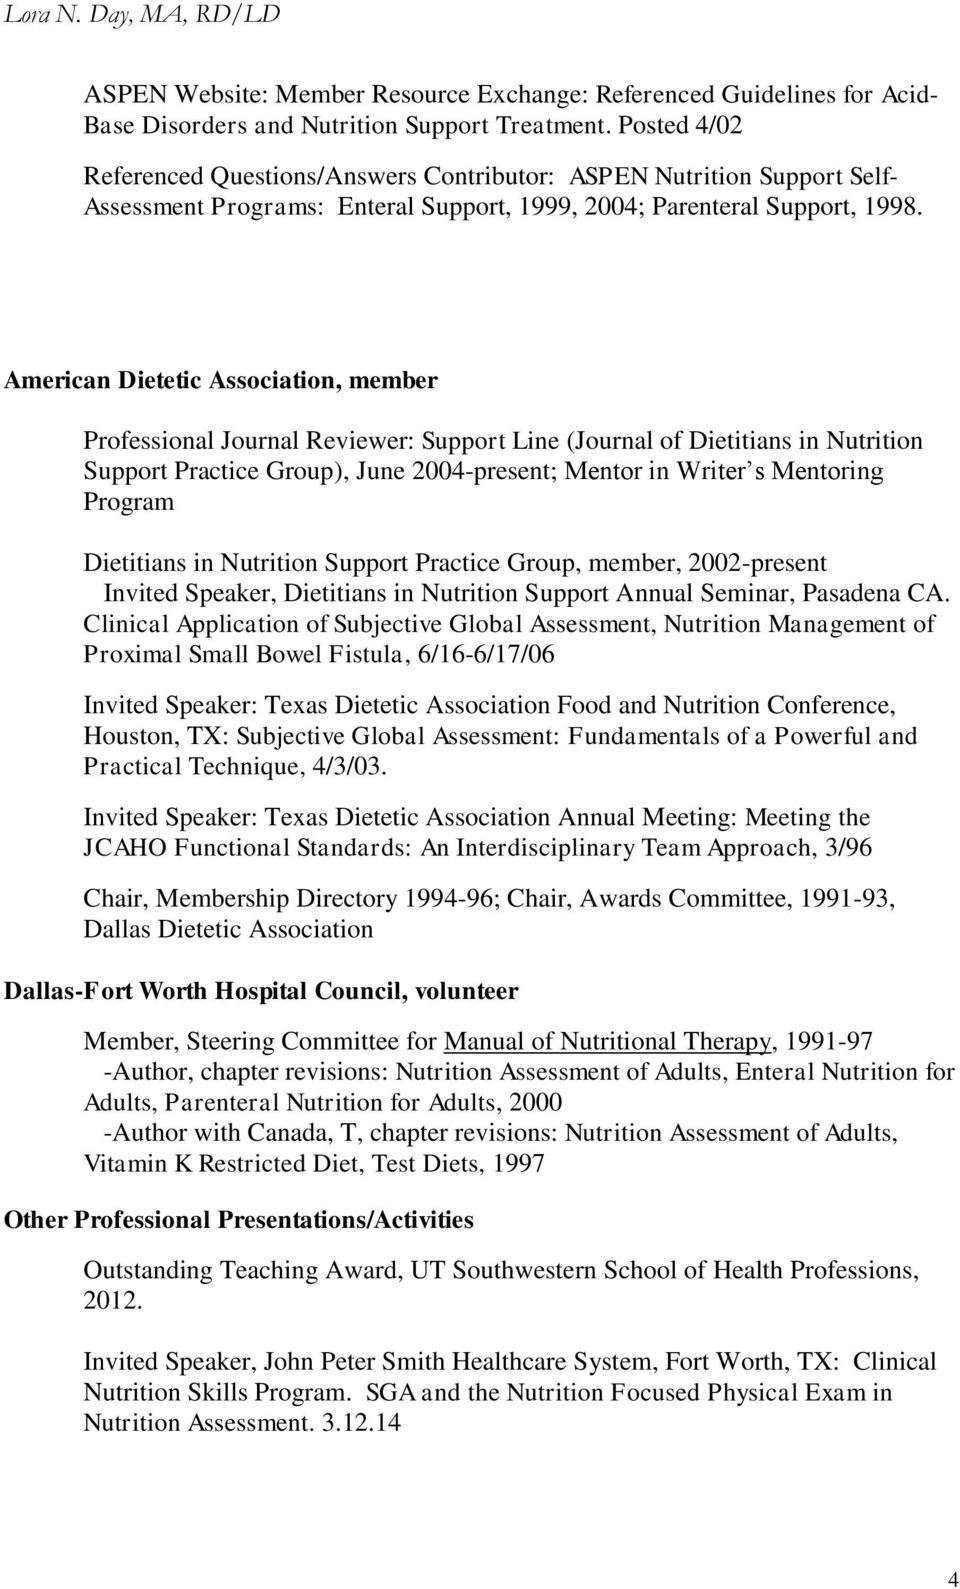 American Dietetic Association, member Professional Journal Reviewer: Support Line (Journal of Dietitians in Nutrition Support Practice Group), June 2004-present; Mentor in Writer s Mentoring Program